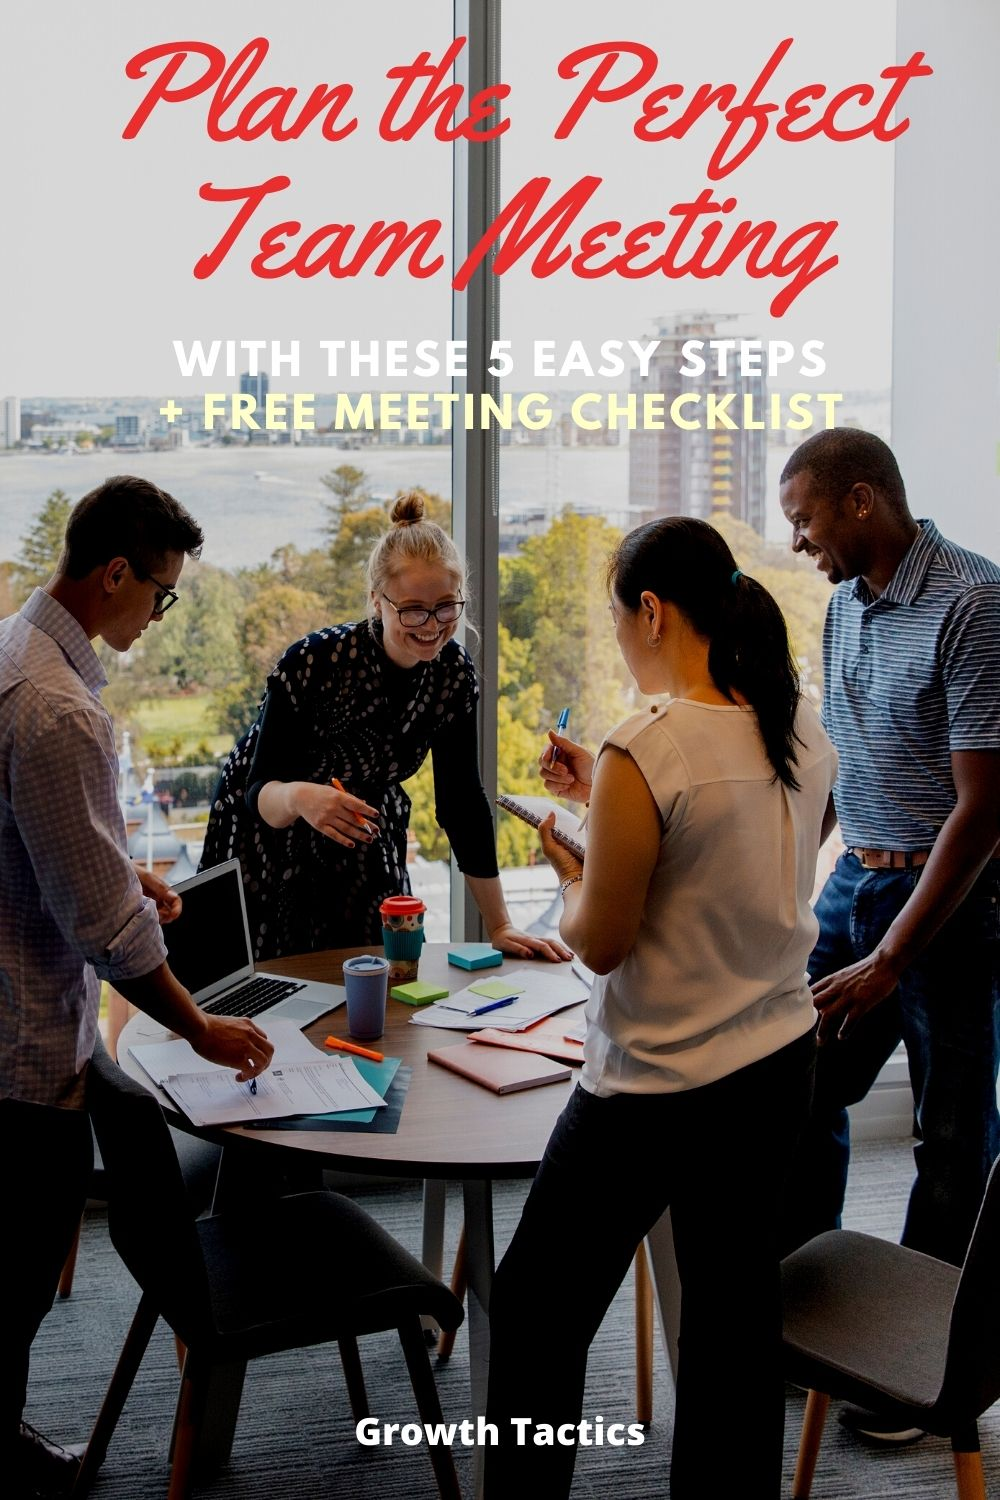 5 Steps to Planning the Perfect Team Meeting